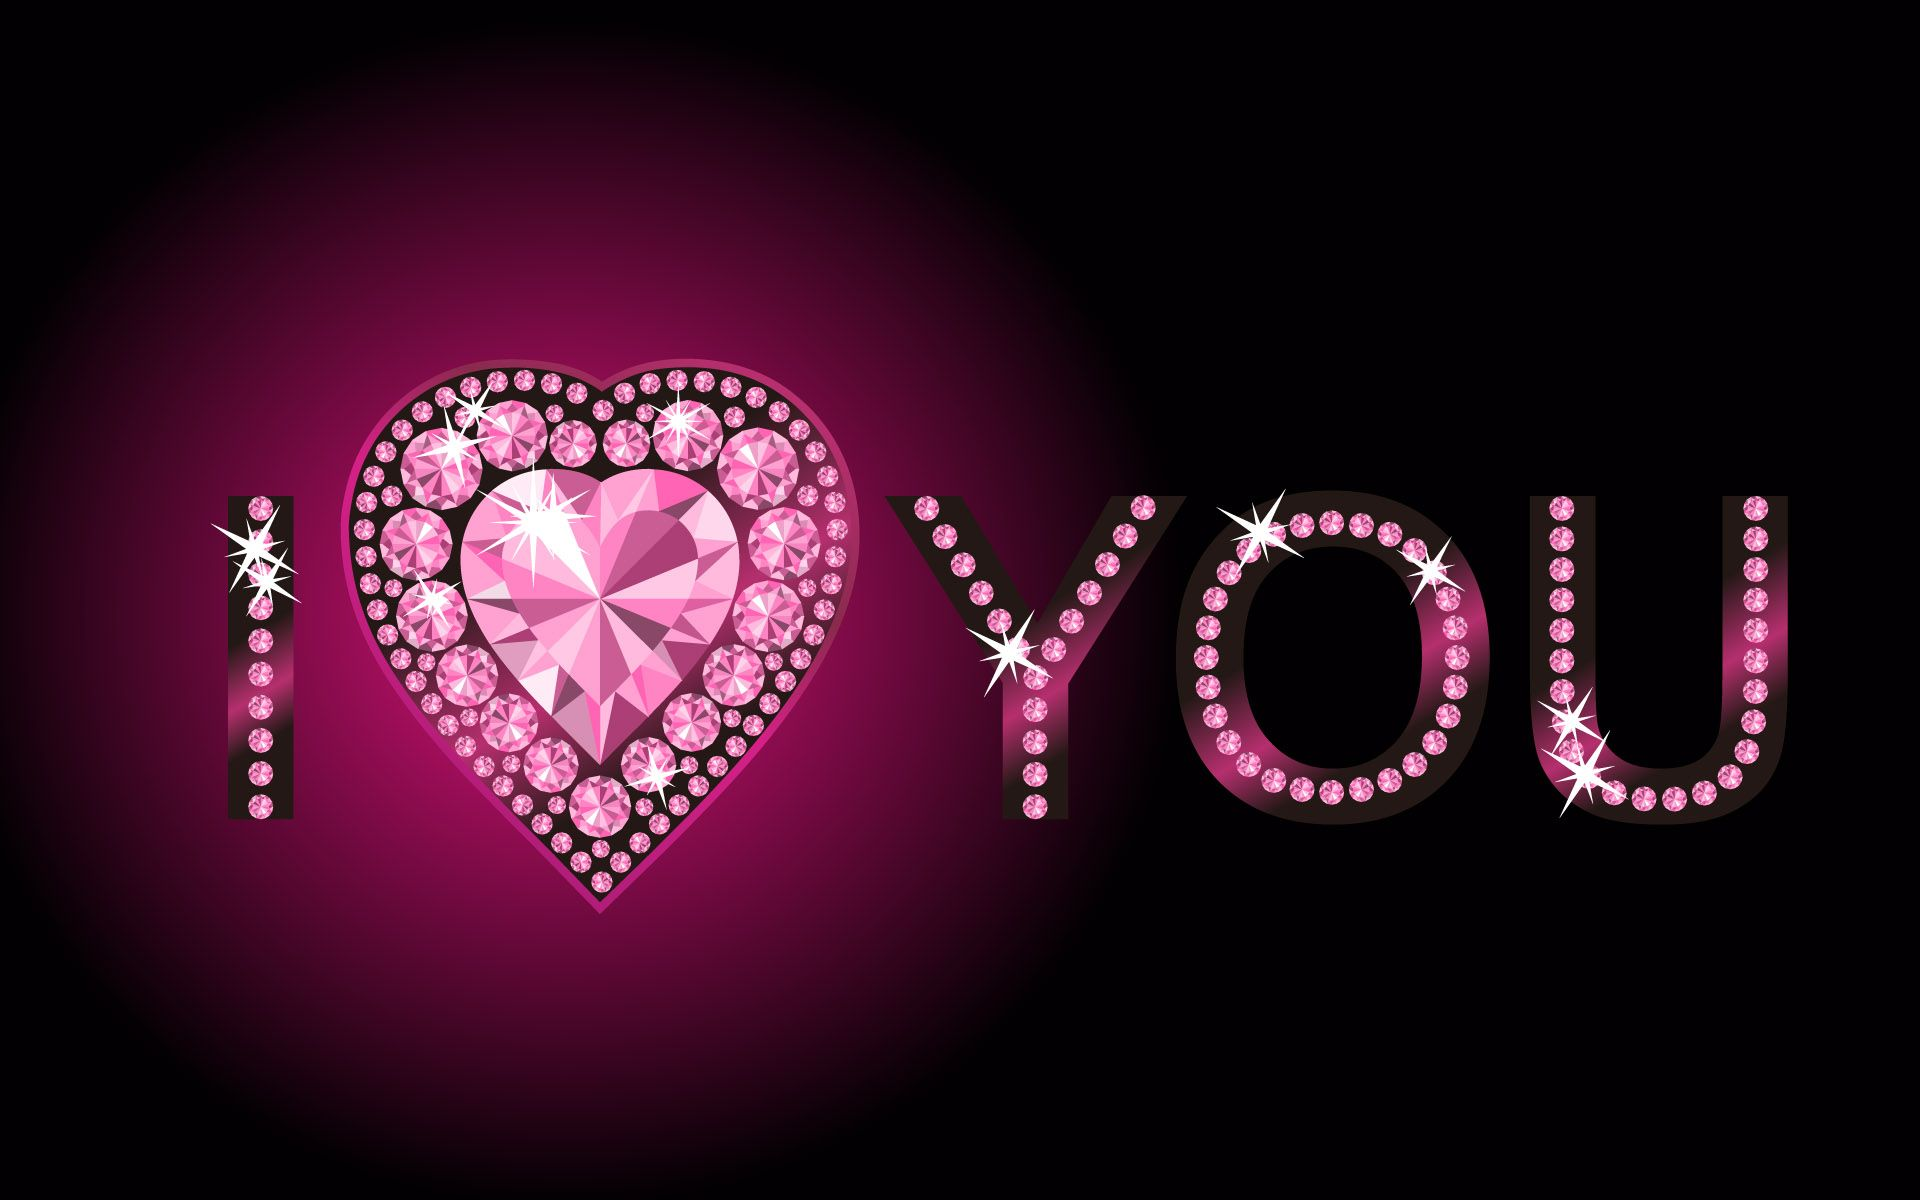 Wallpaper download i love you - Are You Looking For Love Pearl Hd Wallpapers Download Latest Collection Of Love Pearl Hd